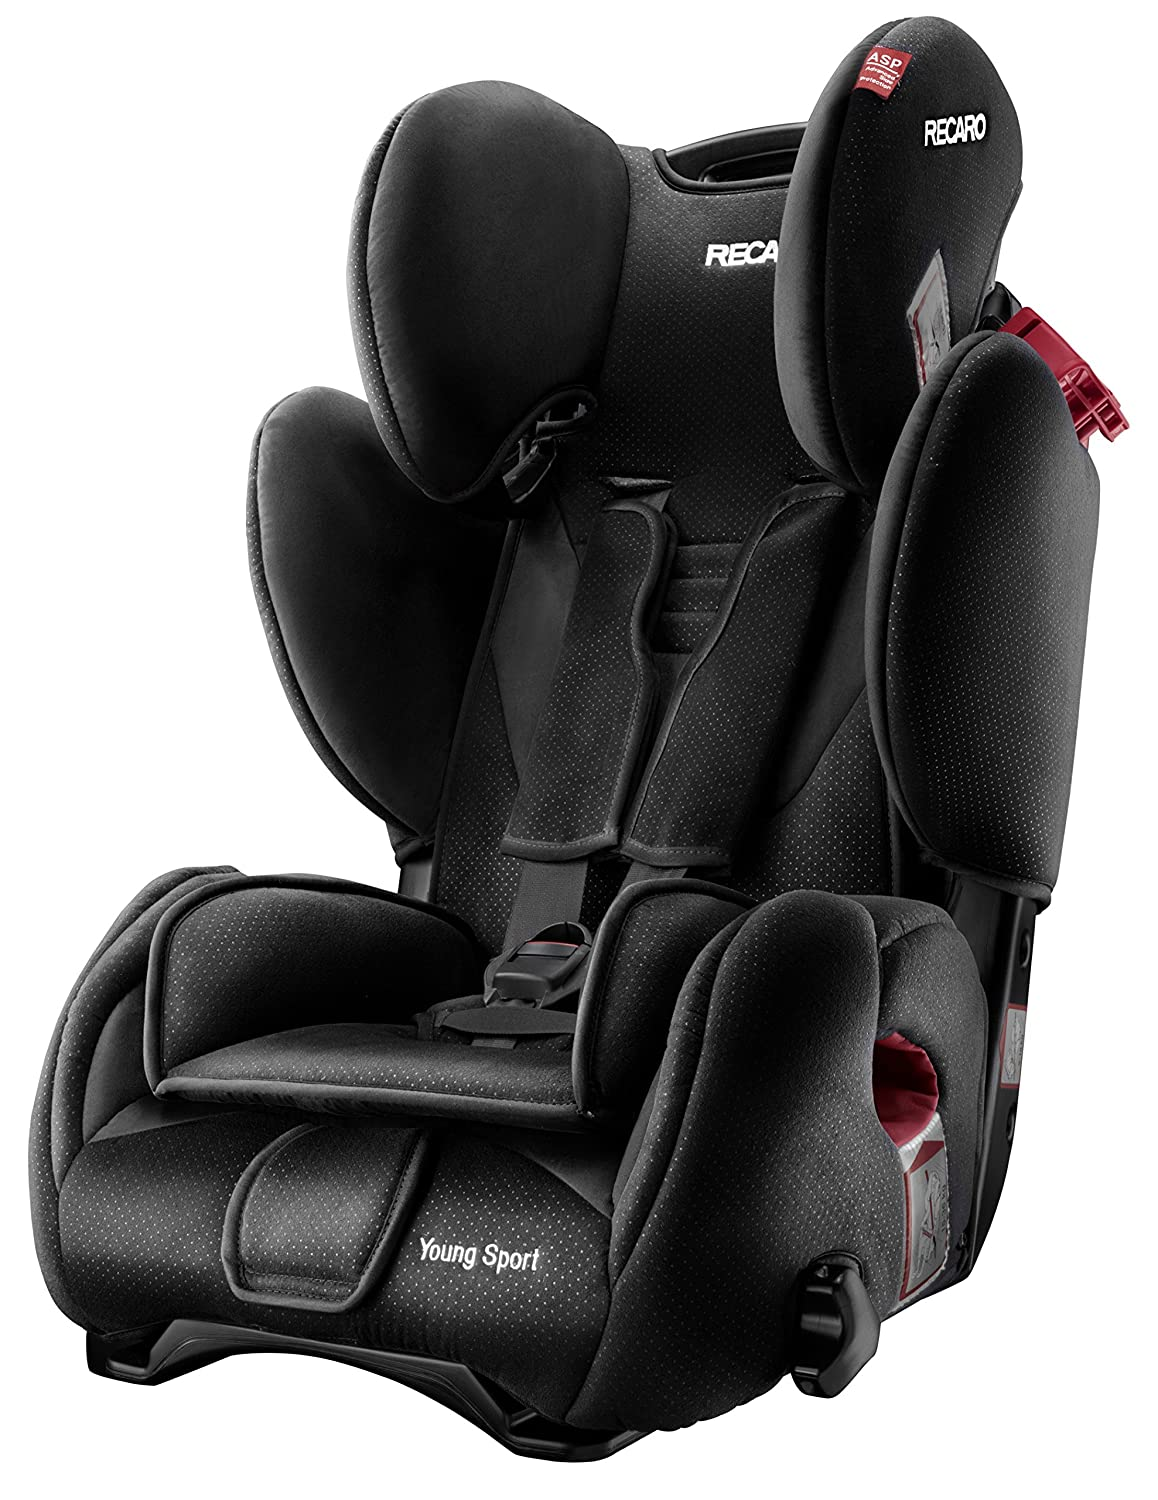 RECARO Young Sport Group 1 2 3 Combination Car Seat Black Amazoncouk Baby